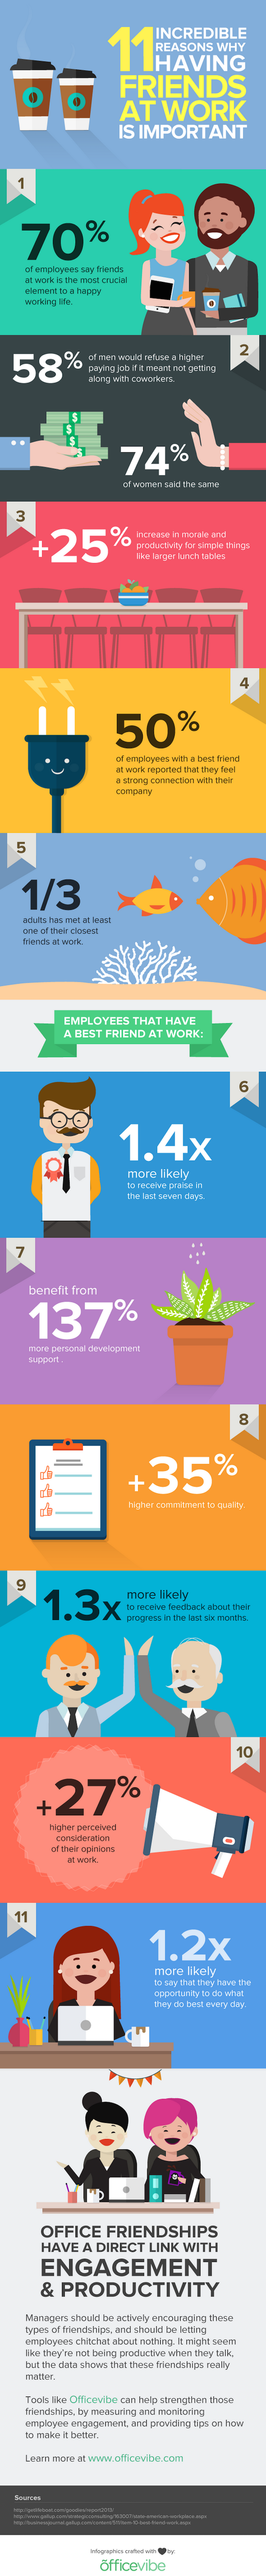 having-friends-at-work-infographic